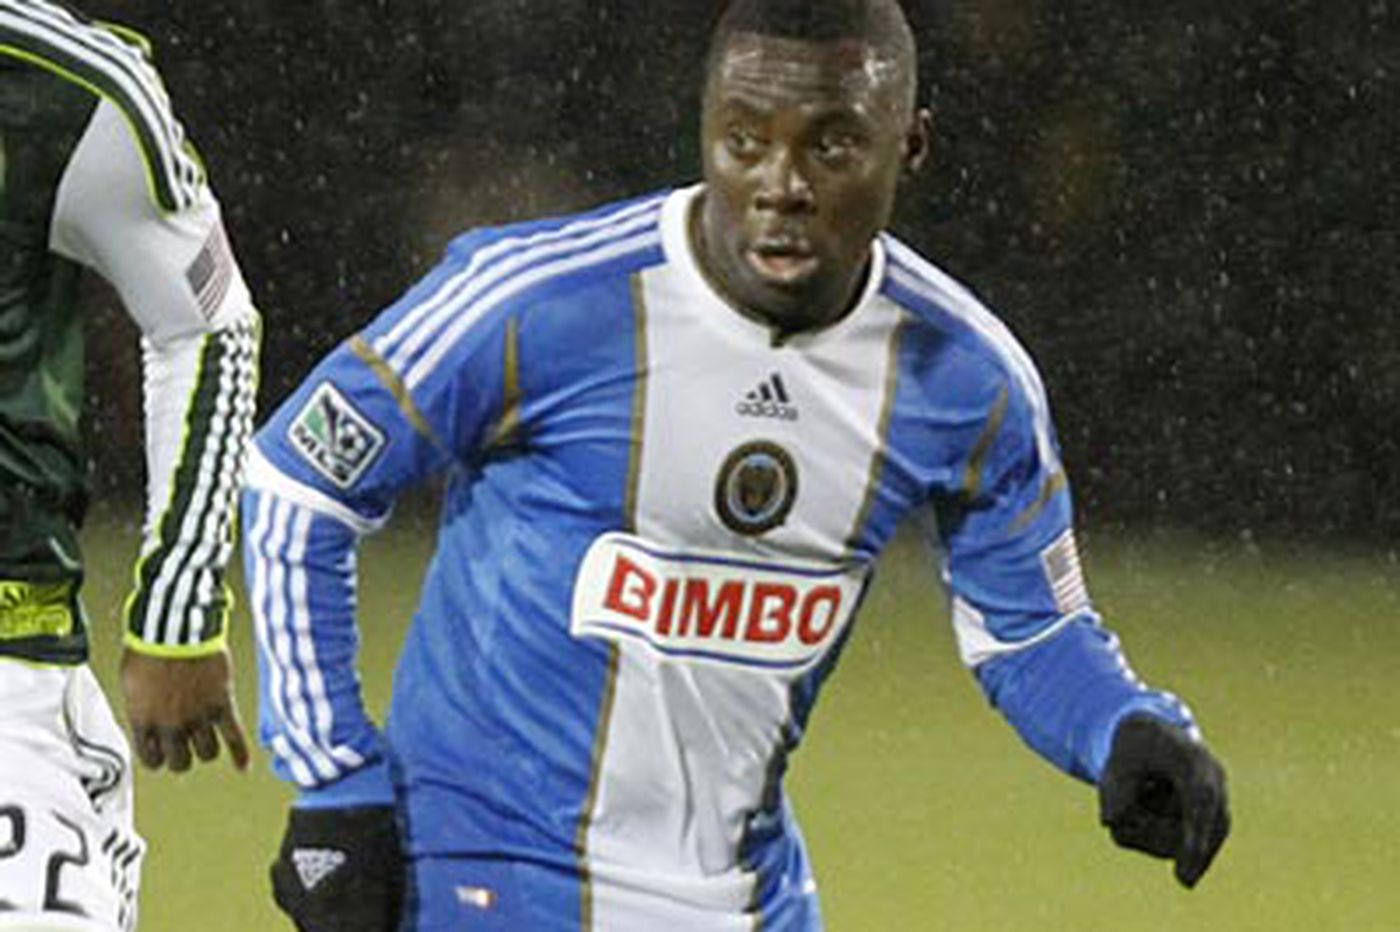 Earthquakes top Union, 2-1, at PPL Park